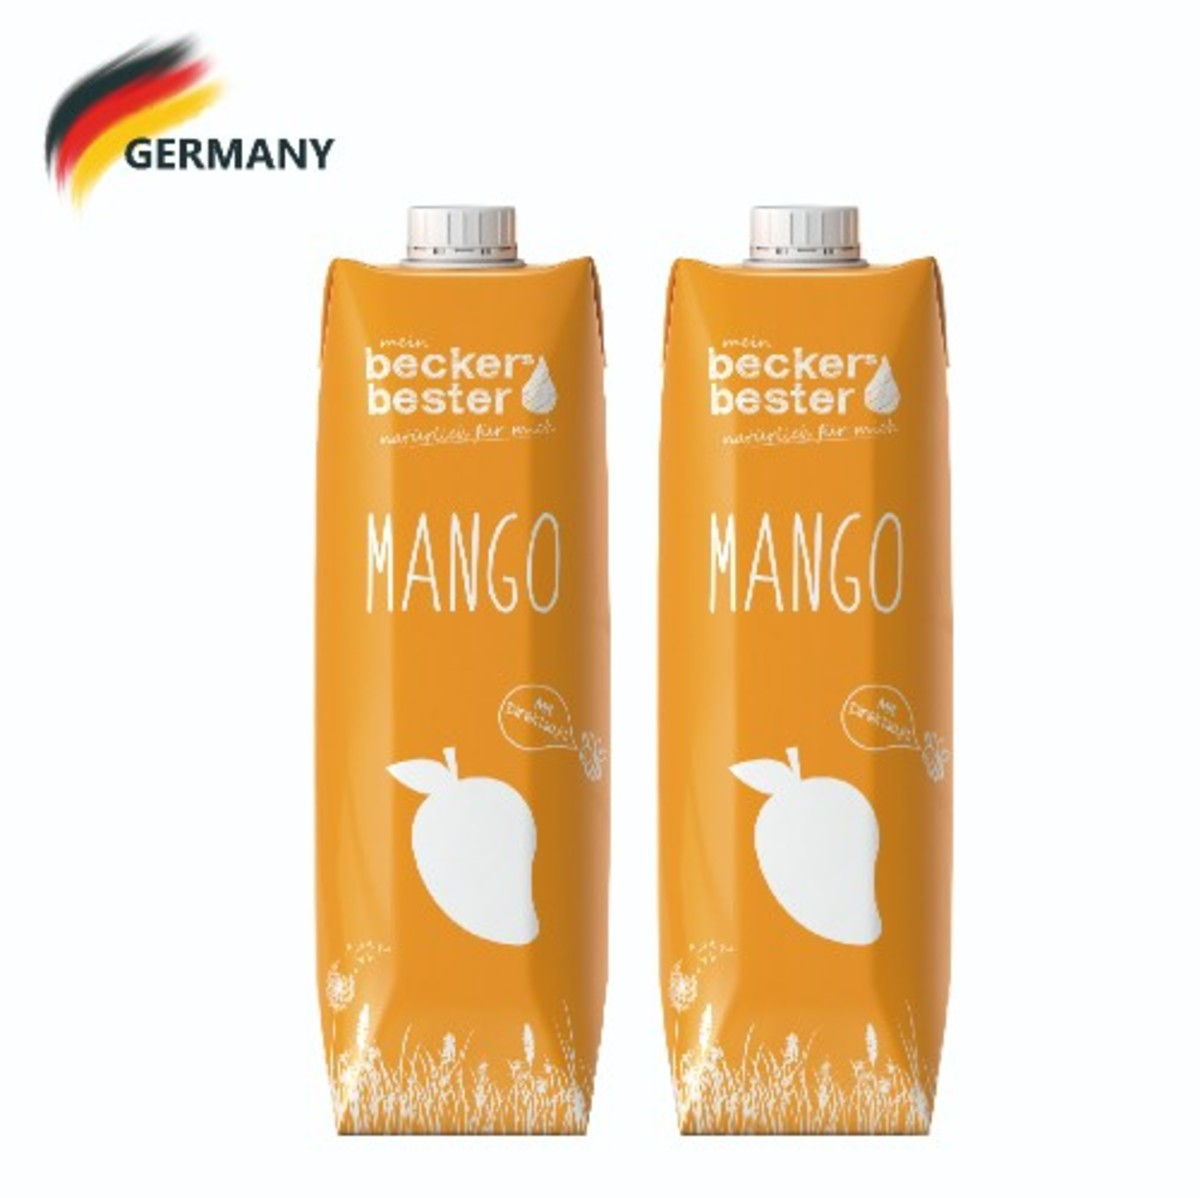 Direct Pressed Mango Nectar (Not-From-Concentrate) 1L x2